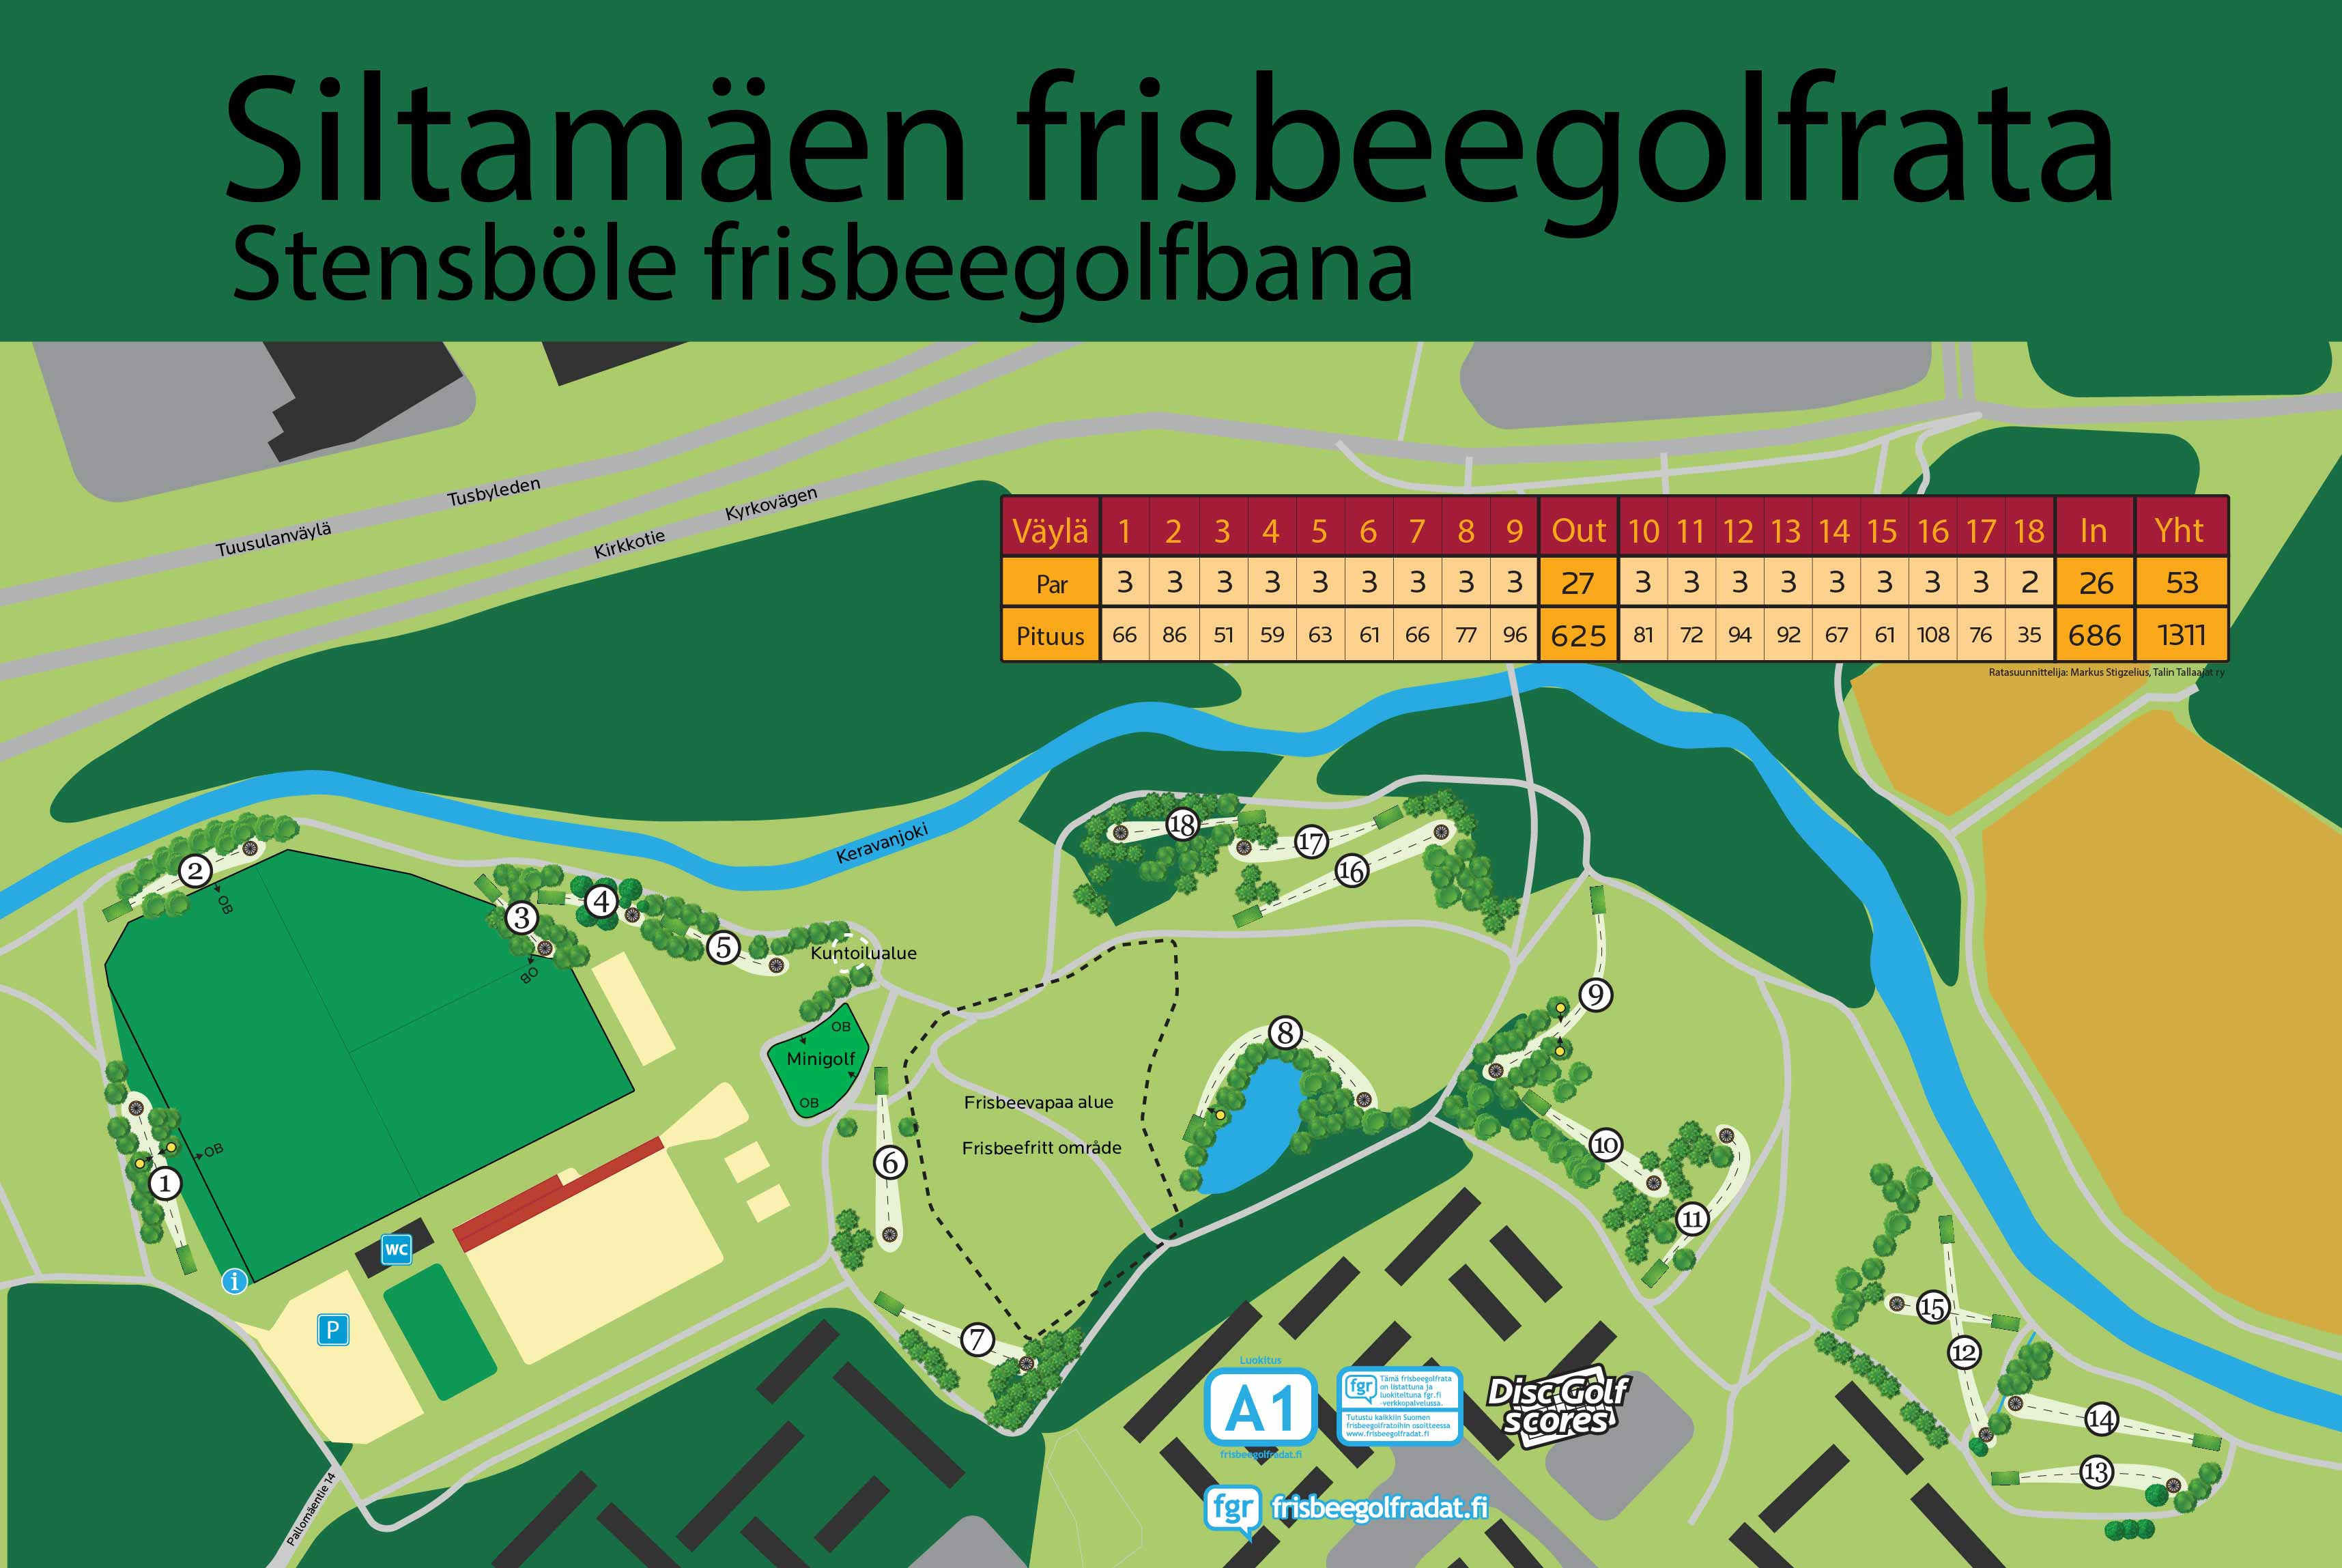 Siltamaen Frisbeegolf Rata Things To Do In Helsinki Likealocal